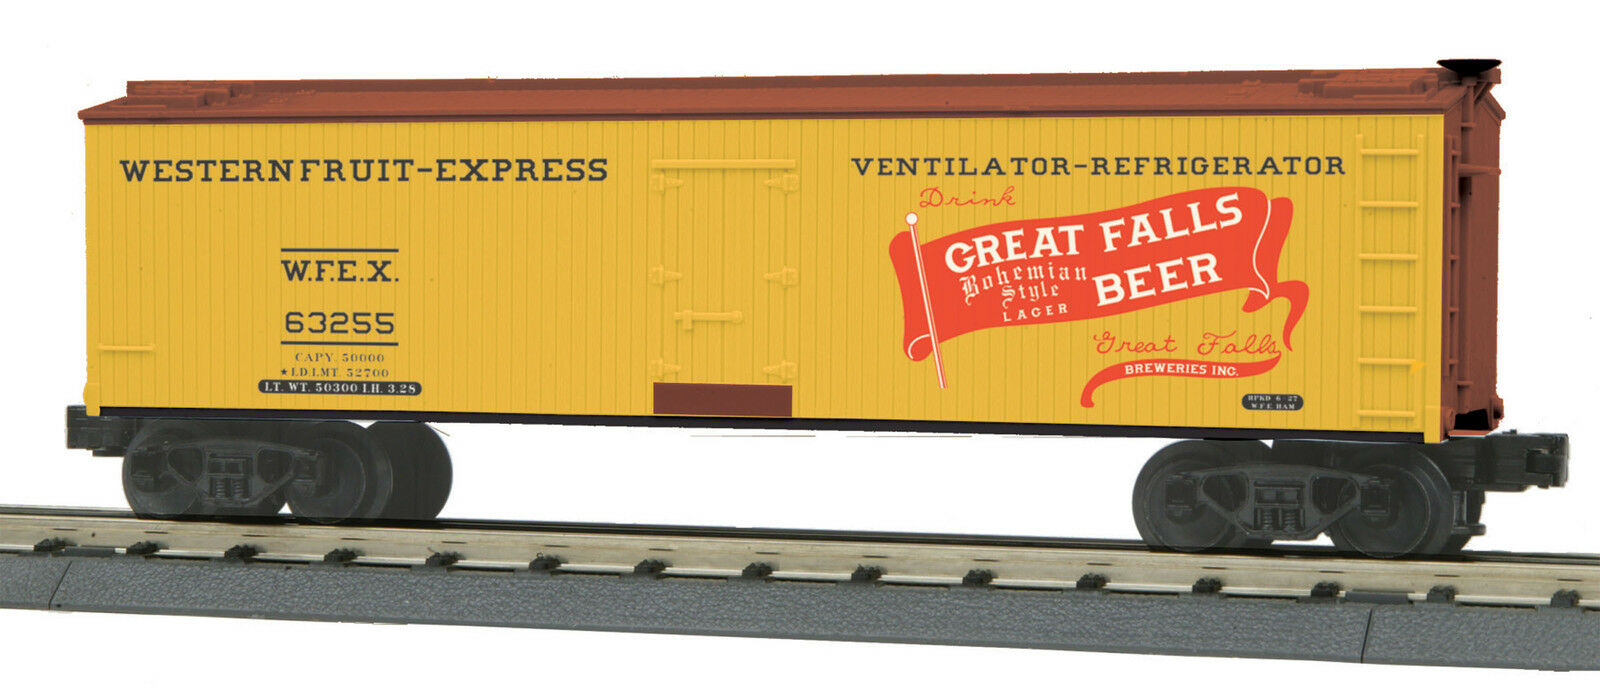 MTH Railking O Trains Great Falls Beer 40' Woodsided Reefer Car 30-78175